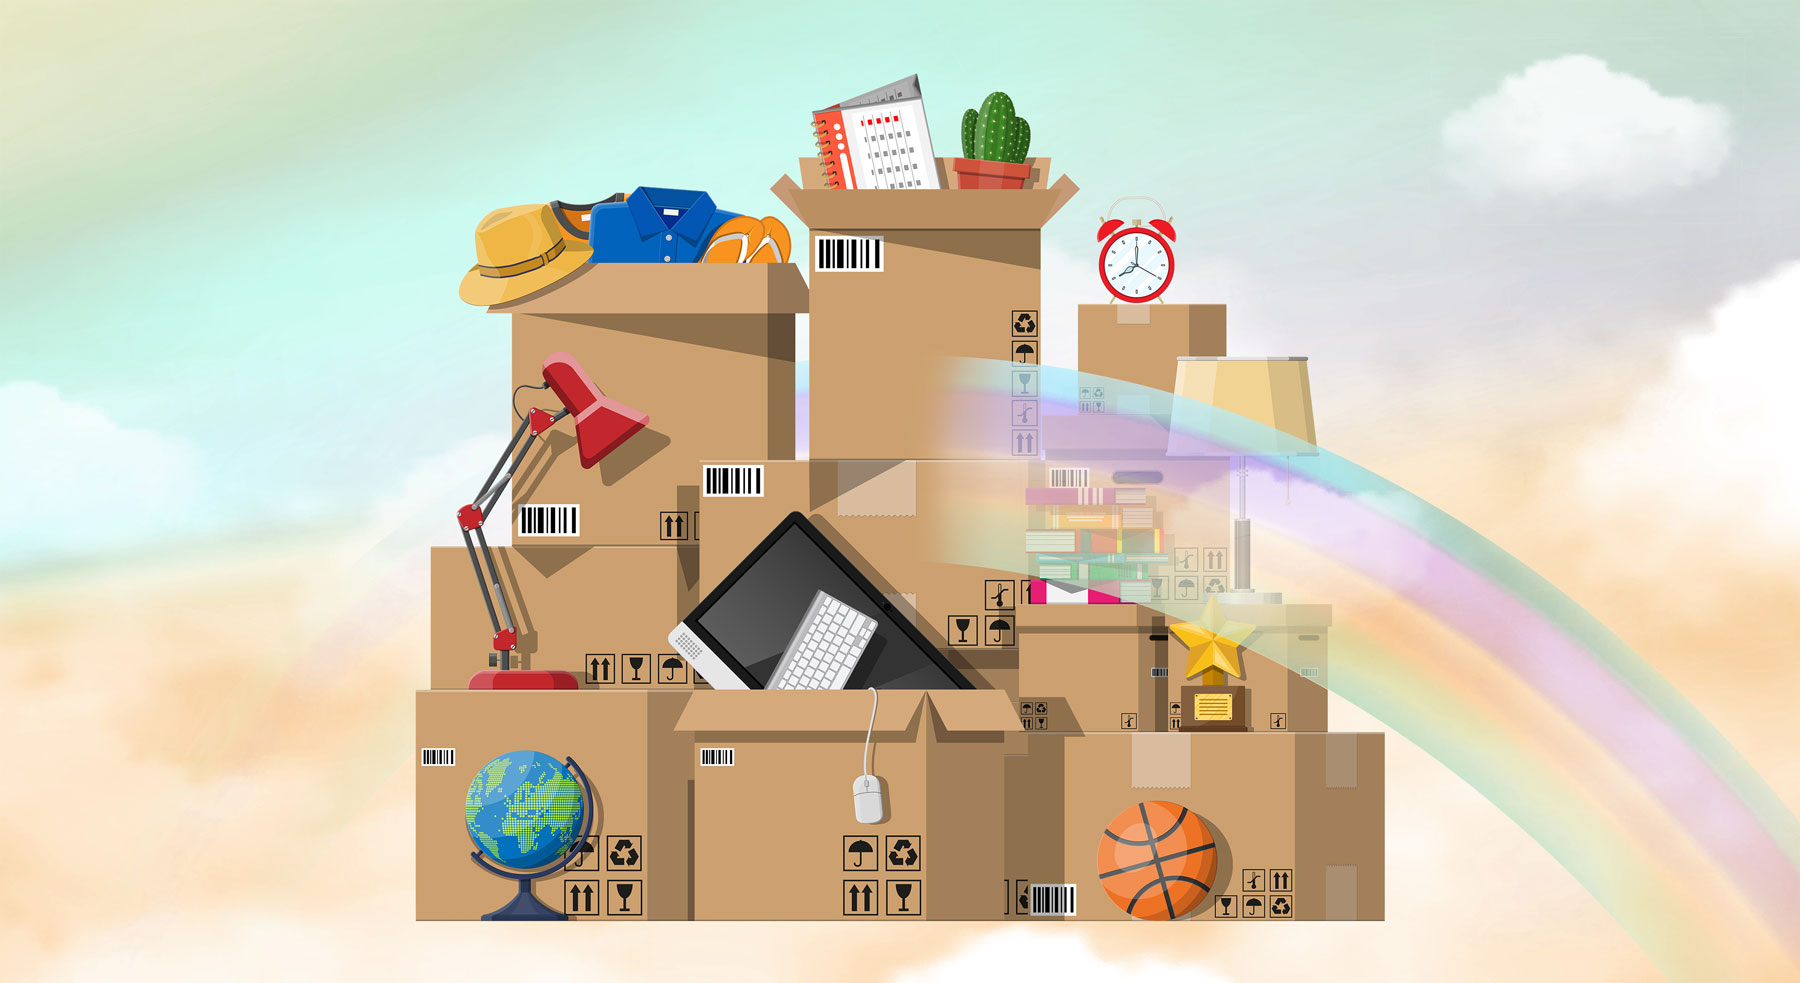 Moving Is Incredibly Stressful, But This Simple Secret Can Make It a Happy Experience